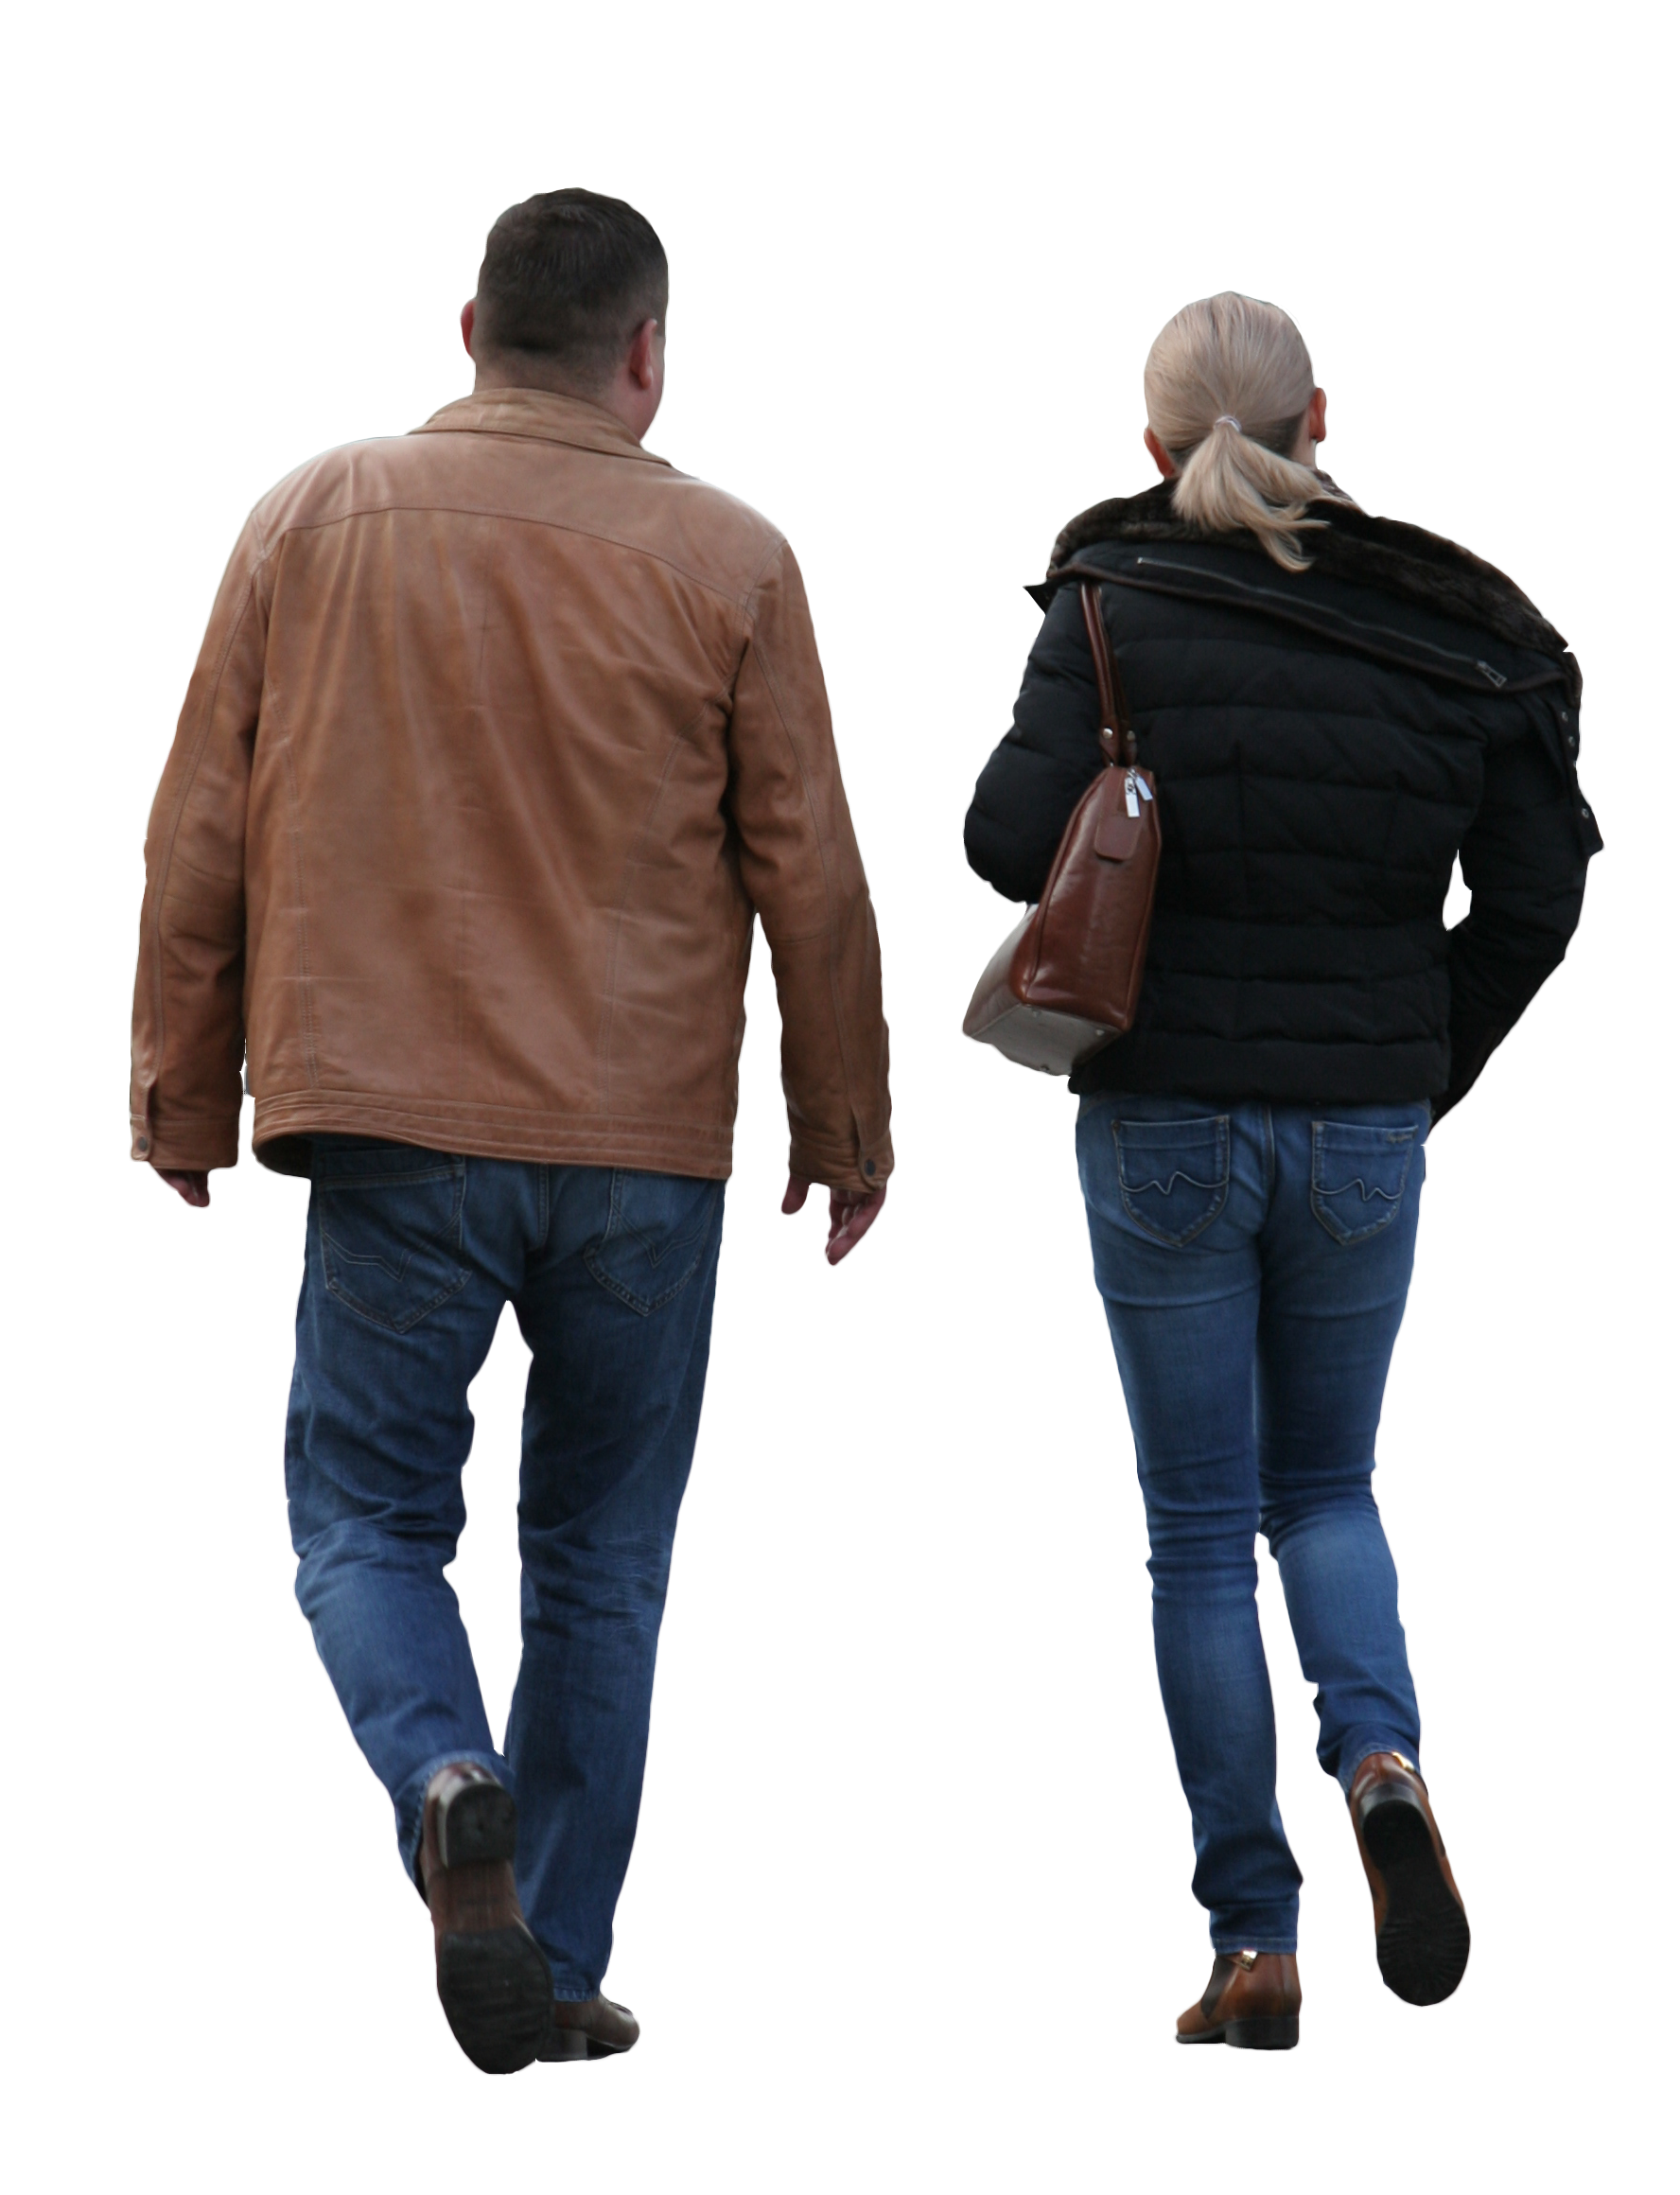 People walking png. Couple free cut out